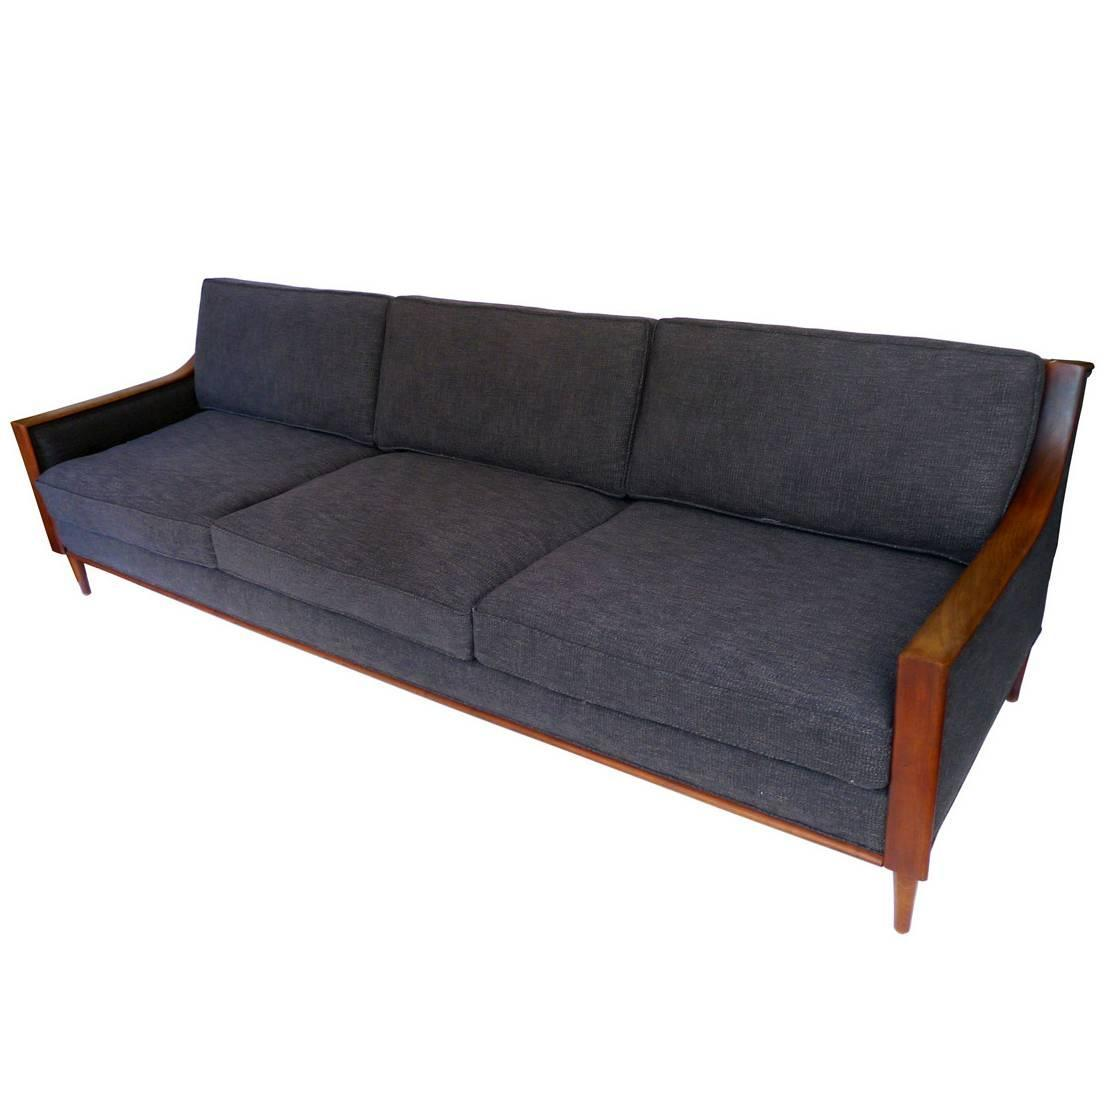 reupholstered mid century scandinavian sofa at 1stdibs. Black Bedroom Furniture Sets. Home Design Ideas